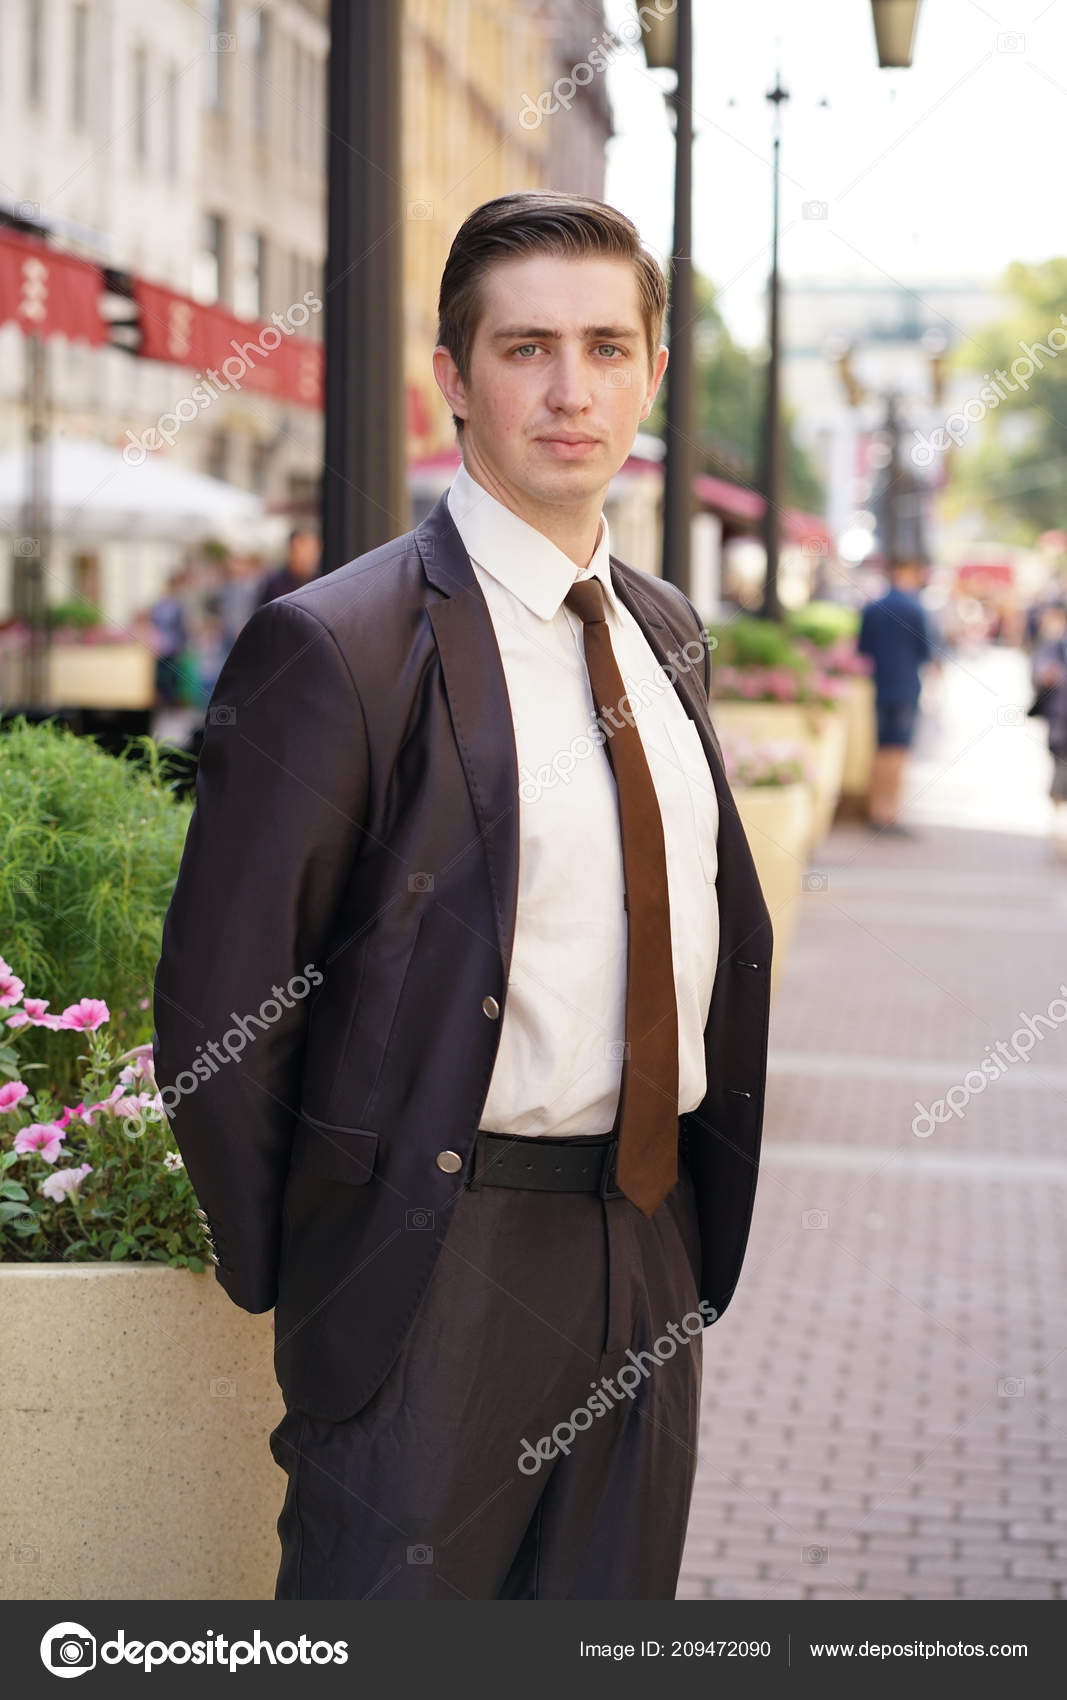 Young Man Black Business Suit White Shirt Tie Stock Photo